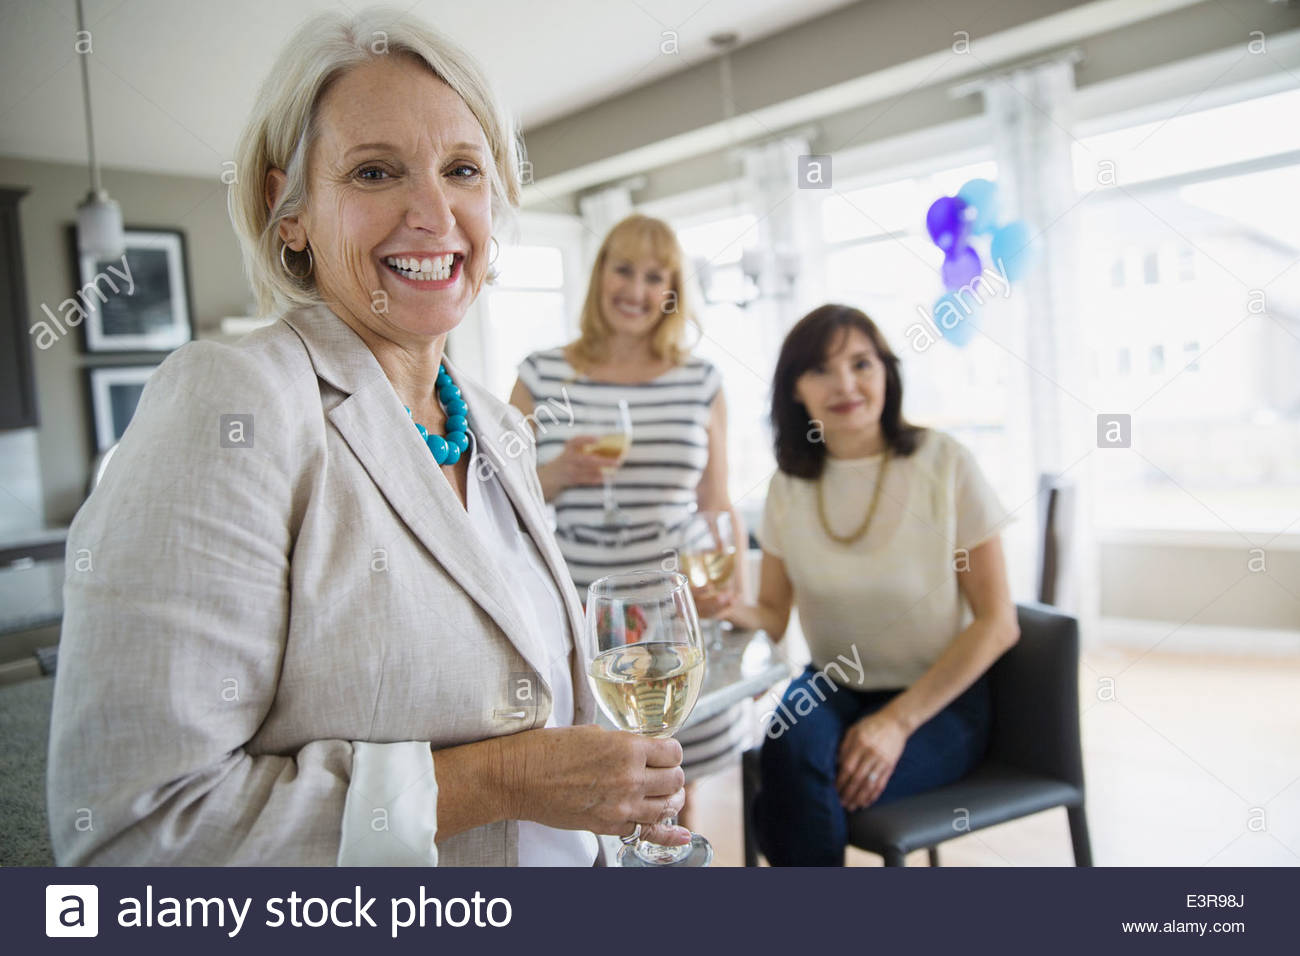 Women drinking wine at party - Stock Image